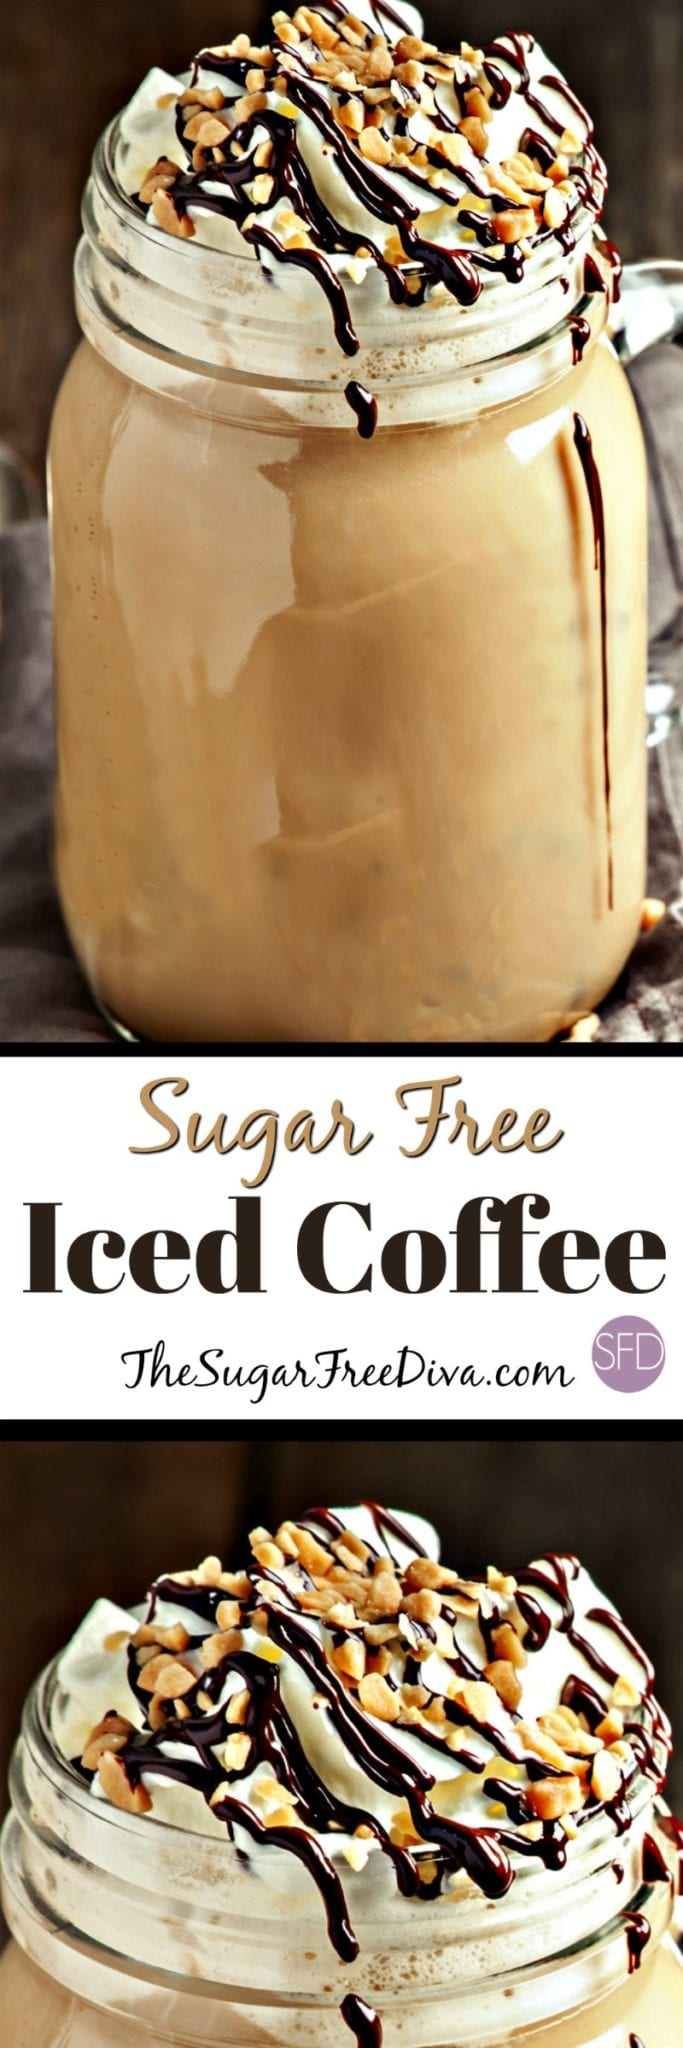 Sugar Free Iced Coffee